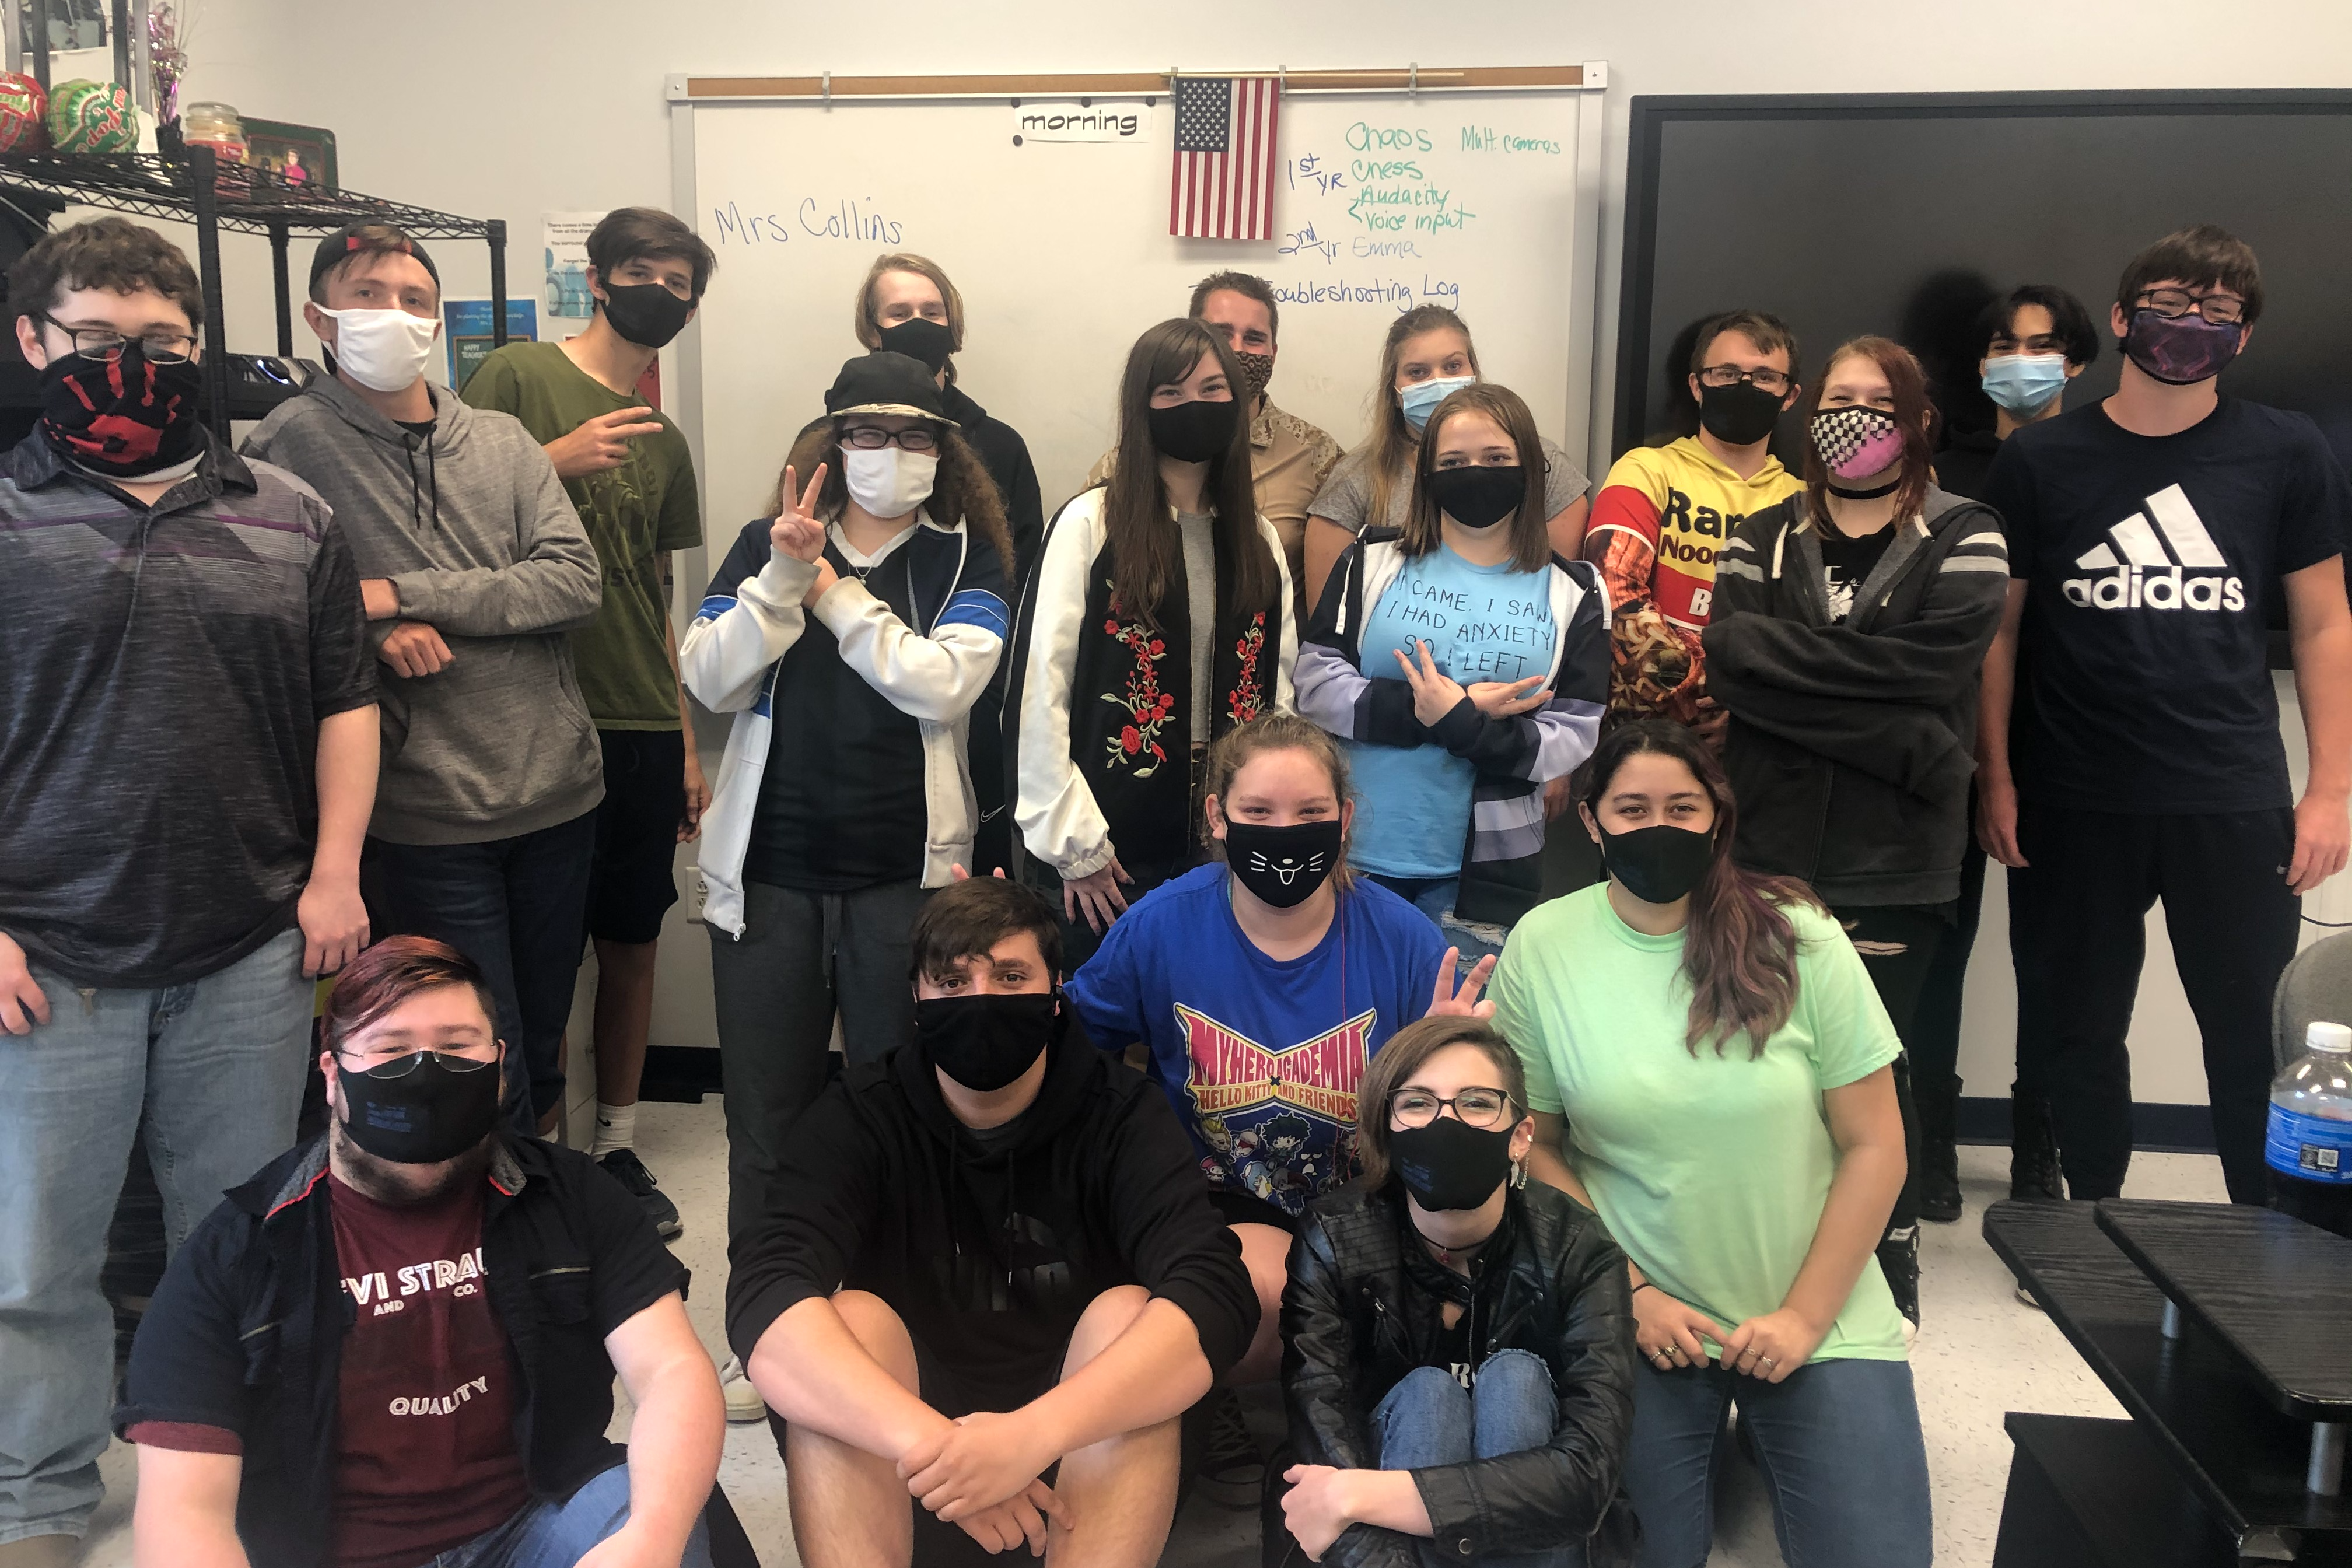 A group of students in masks